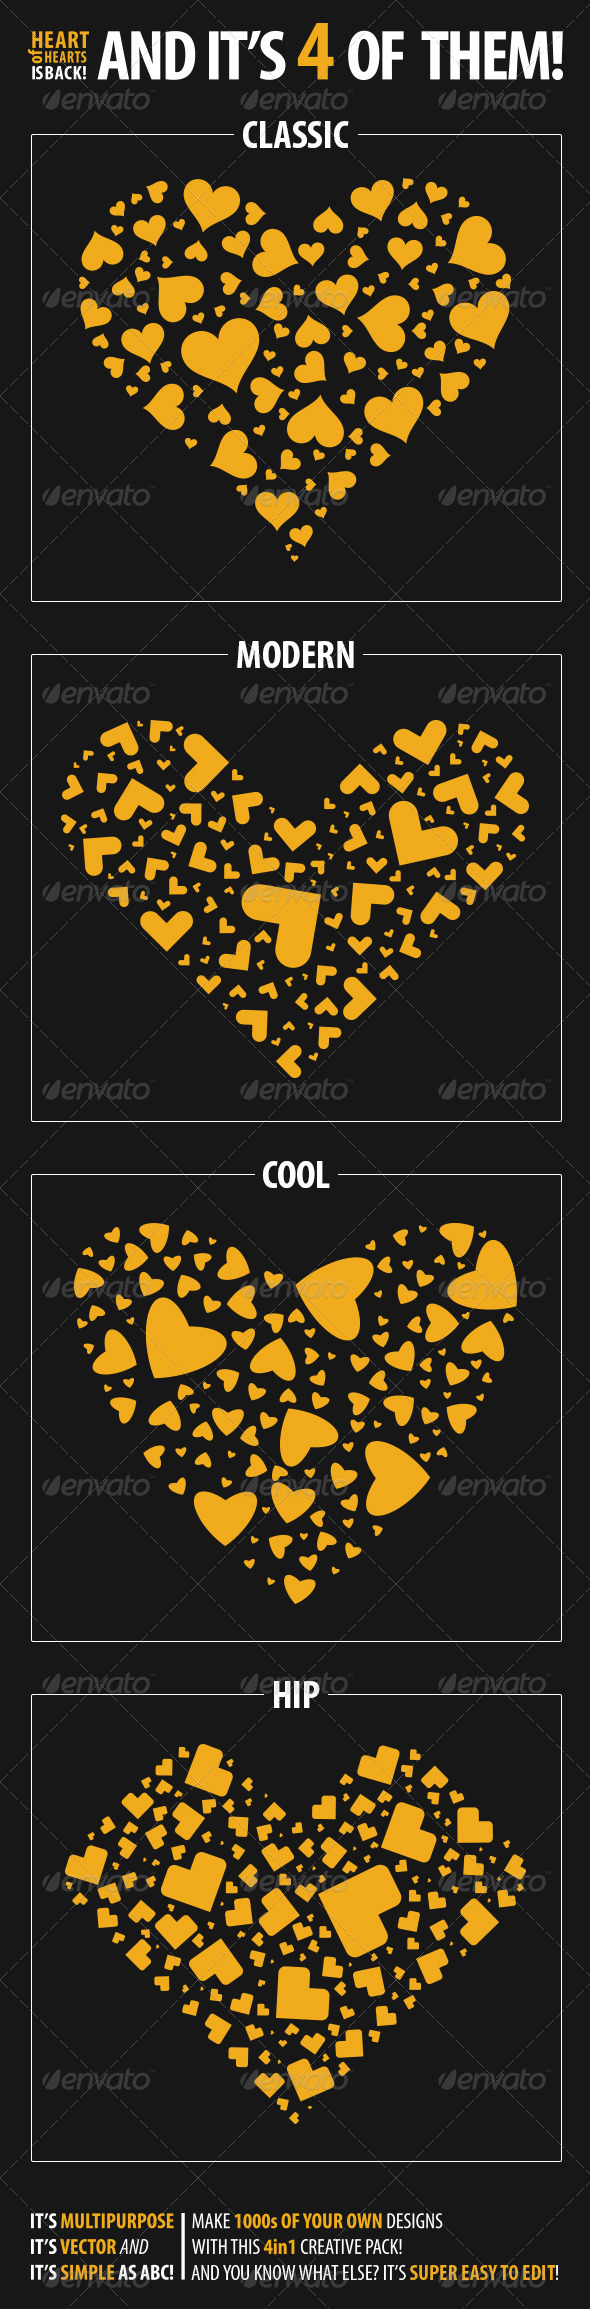 Heart of Hearts 4 in 1 - Vectors